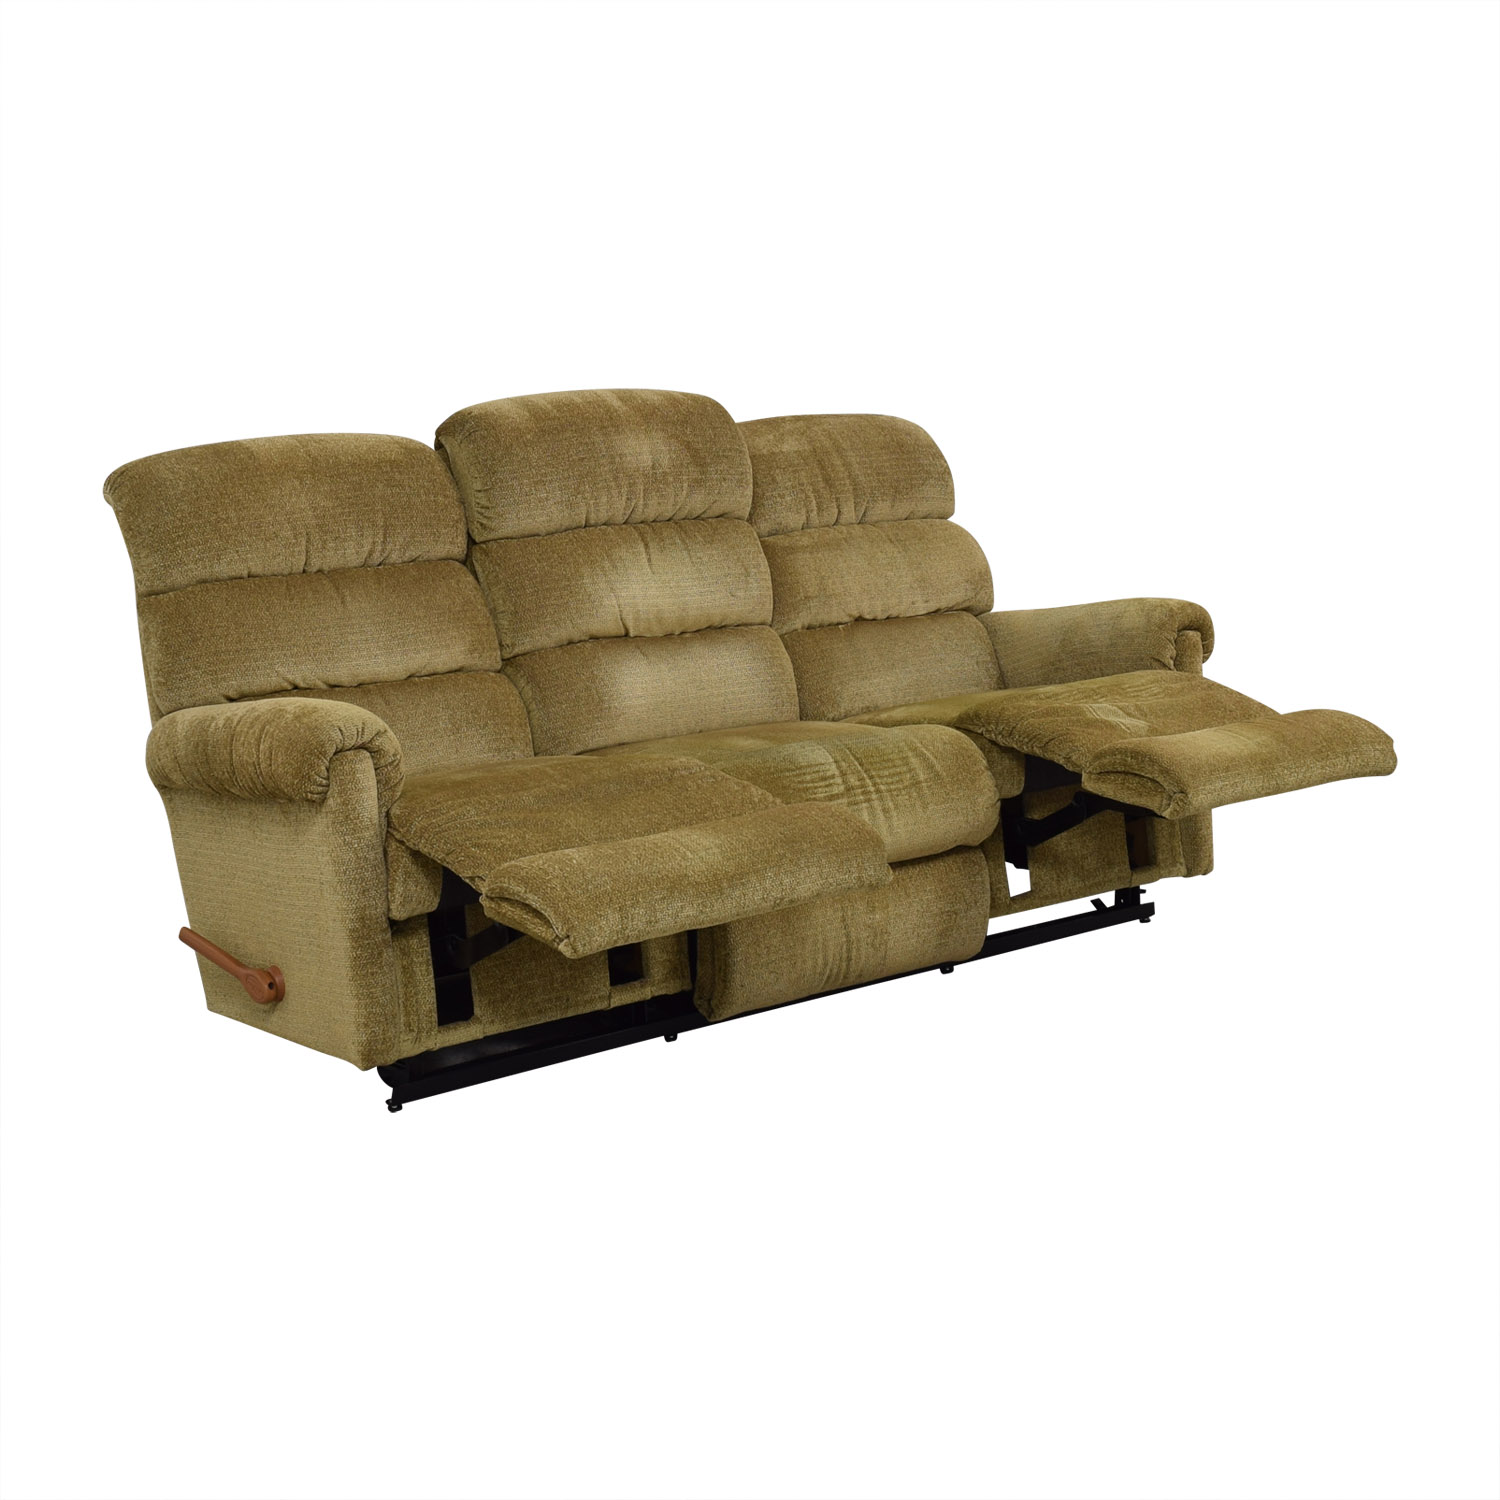 La-Z-Boy Tan Reclining Three-Cushion Sofa / Sofas